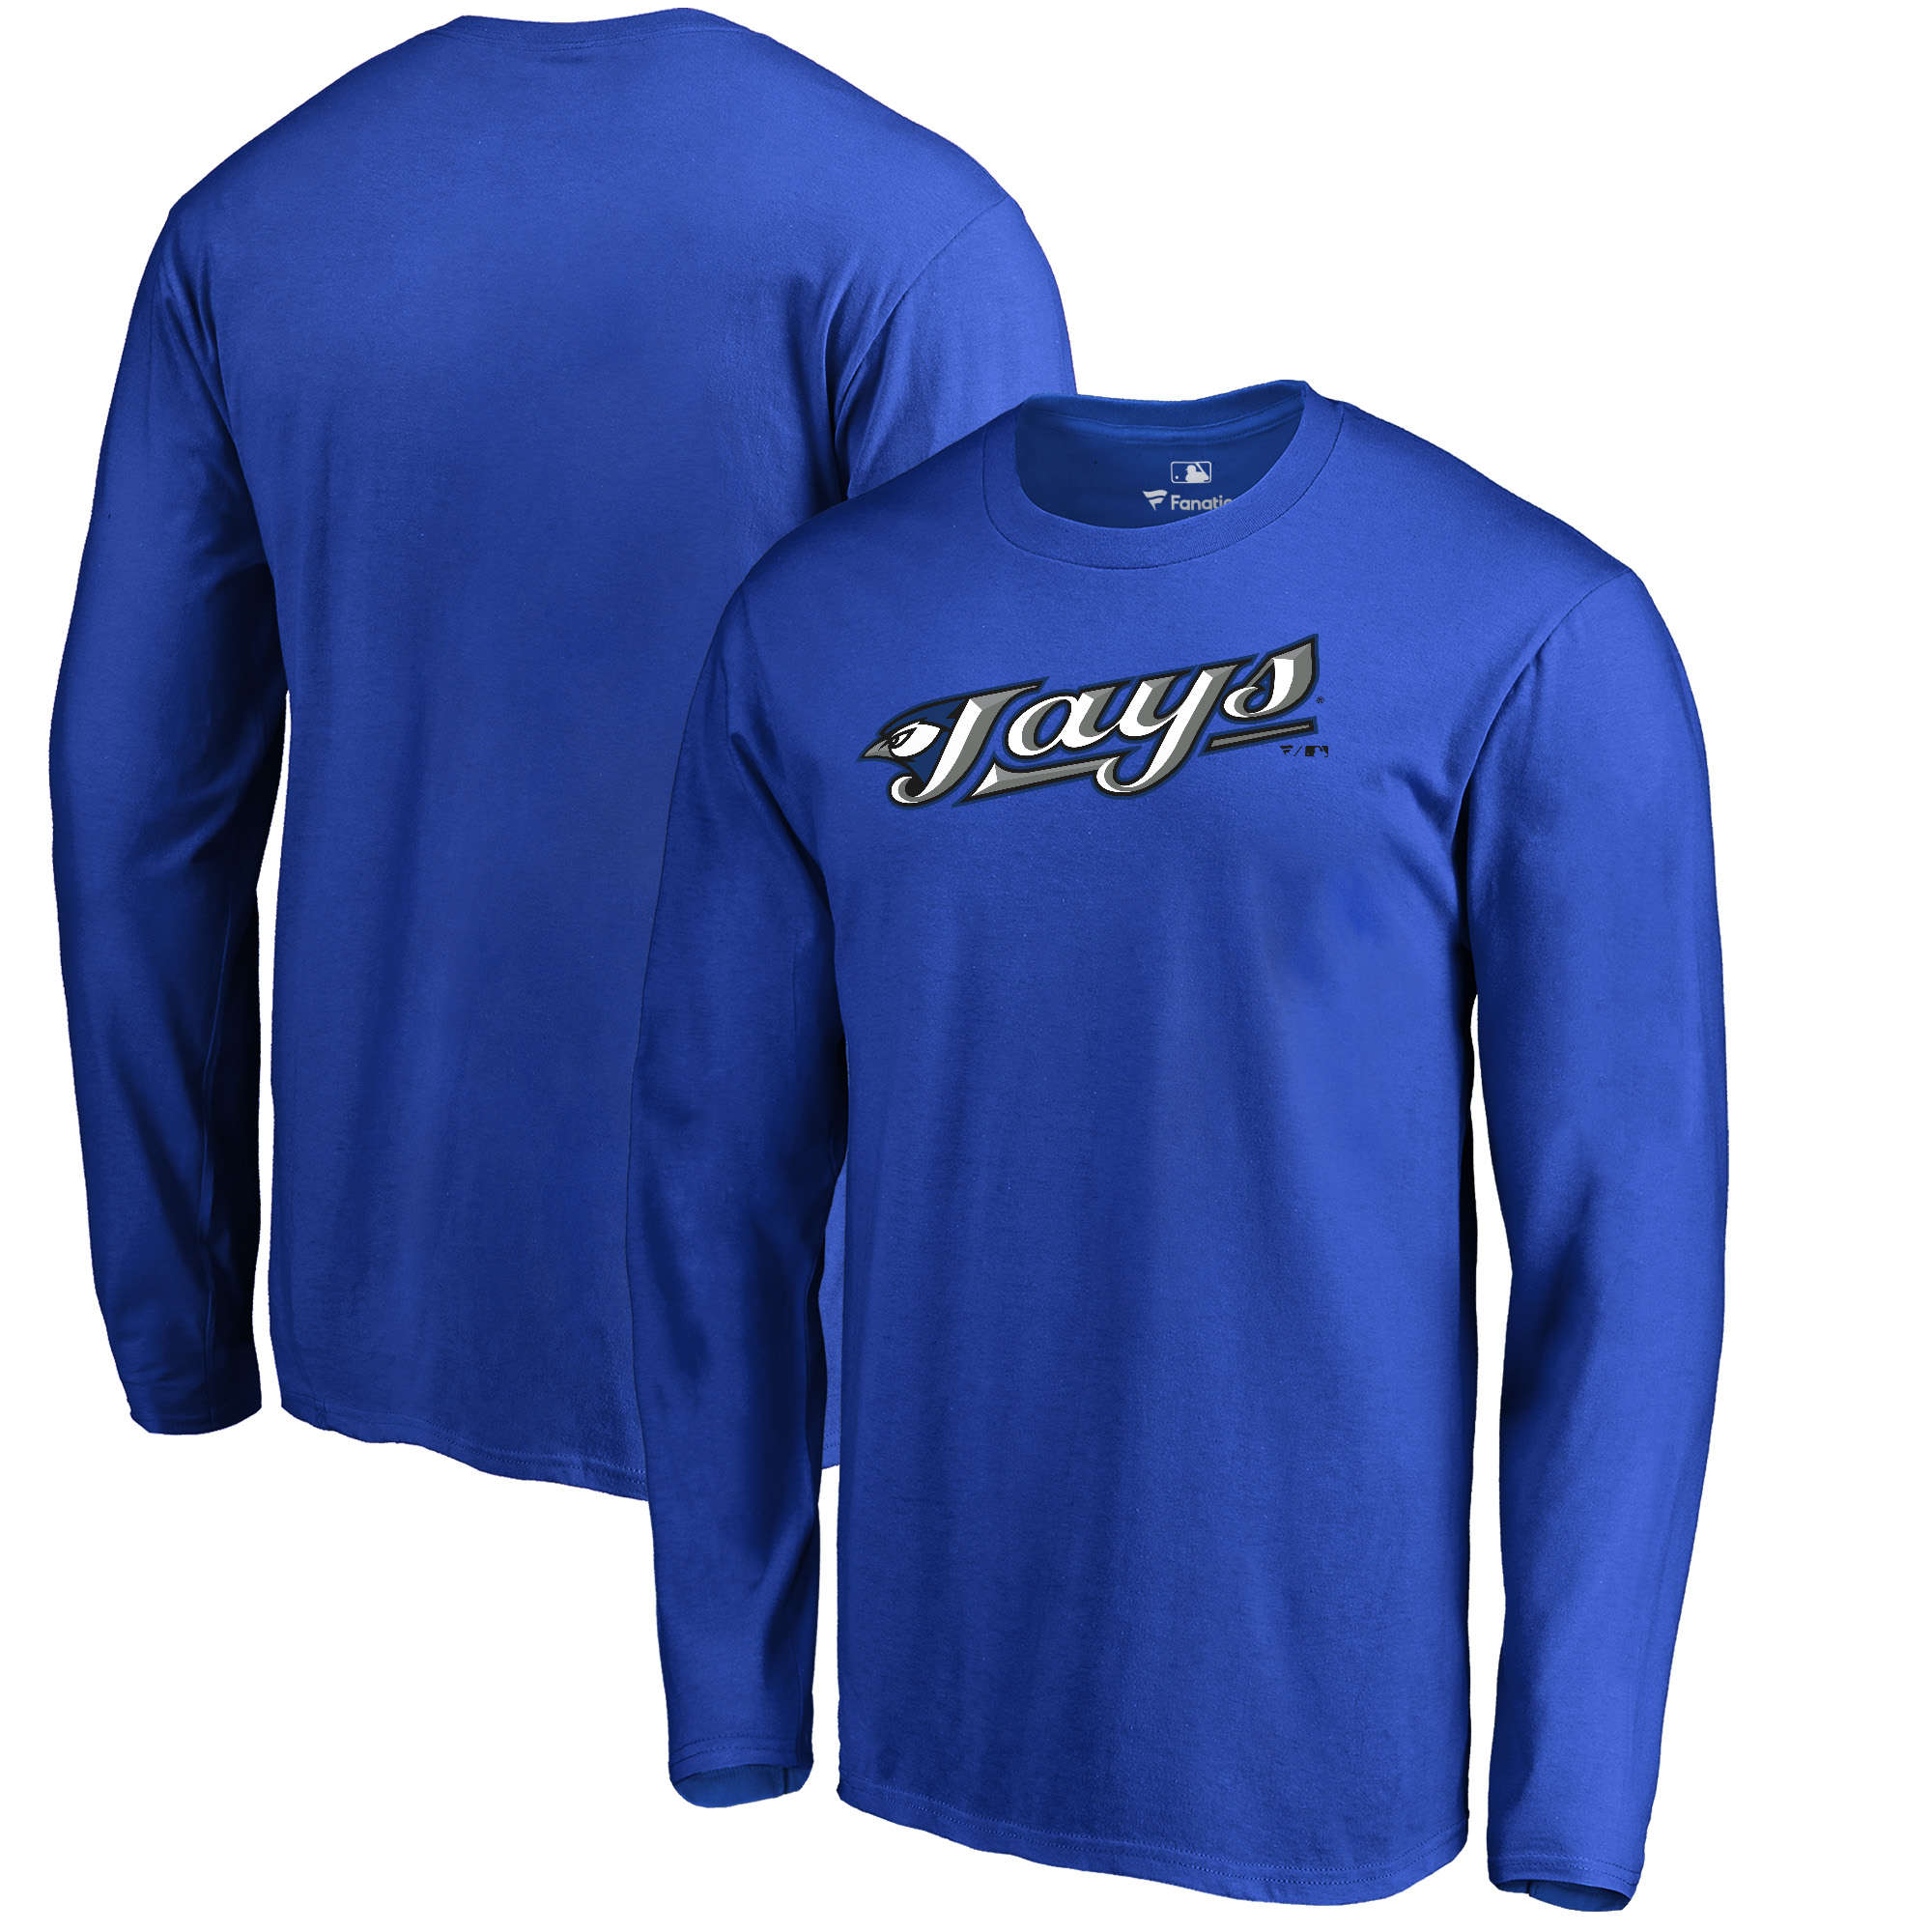 Toronto Blue Jays Fanatics Branded Cooperstown Collection Wahconah Long Sleeve T-Shirt - Royal